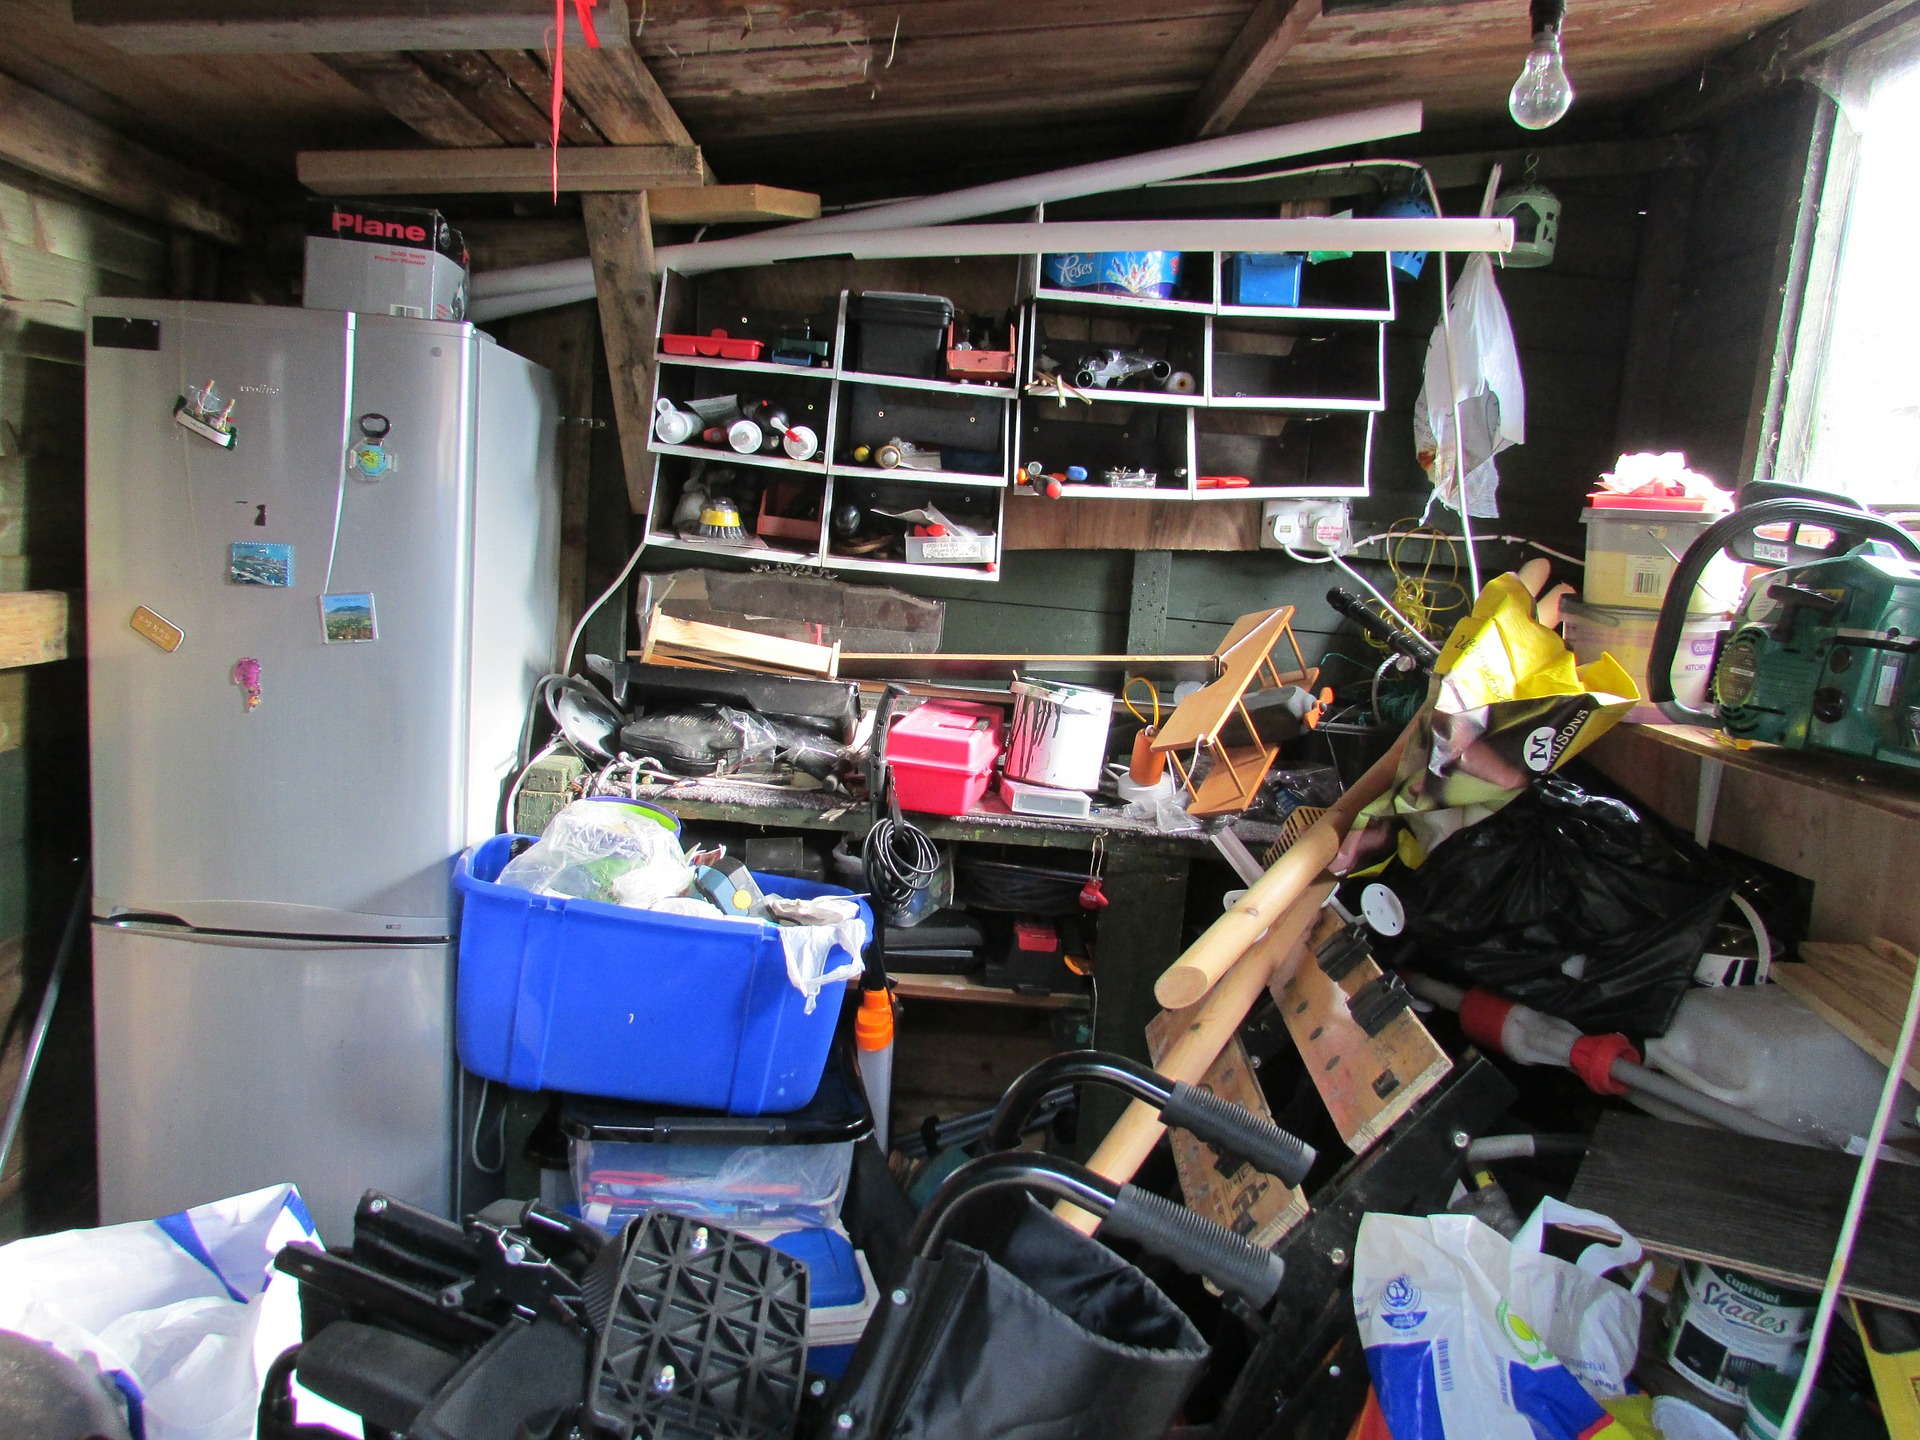 Unbelievably cluttered hoarder's house.